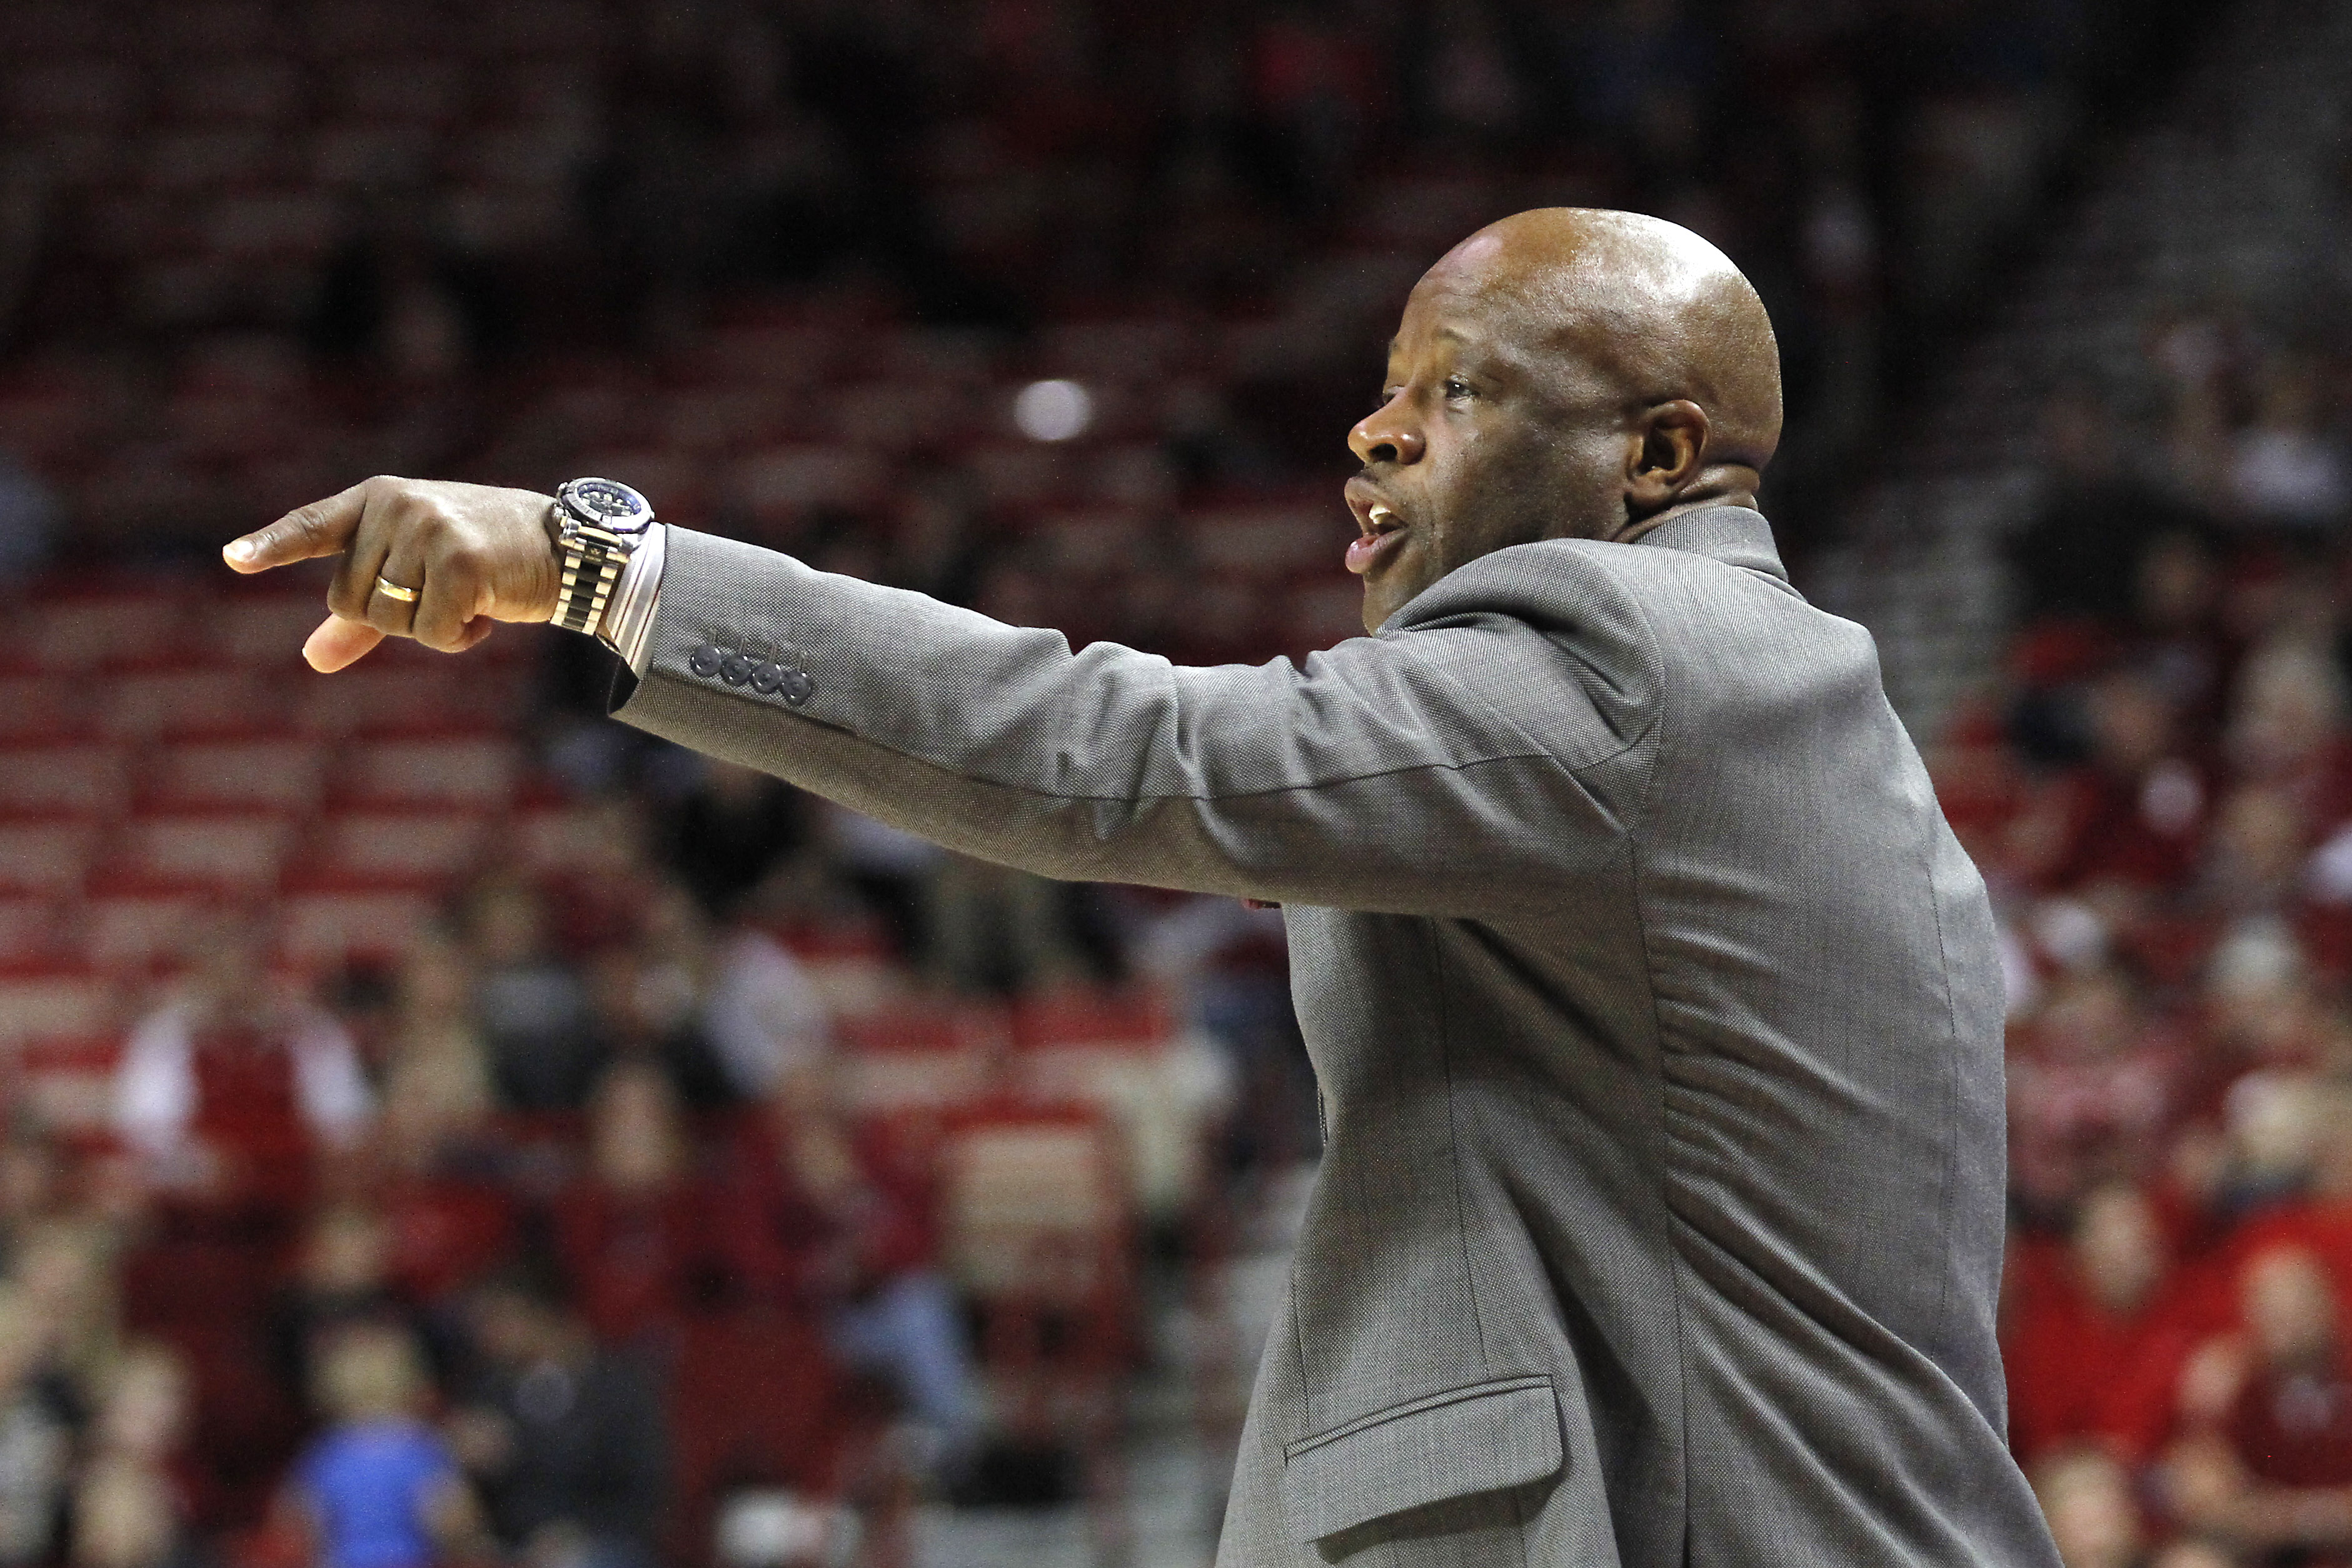 Arkansas' Mike Anderson shouts to his players during the first half of an NCAA college basketball game against Southern University, Friday, Nov. 13, 2015, in Fayetteville, Ark. (AP Photo/Samantha Baker)